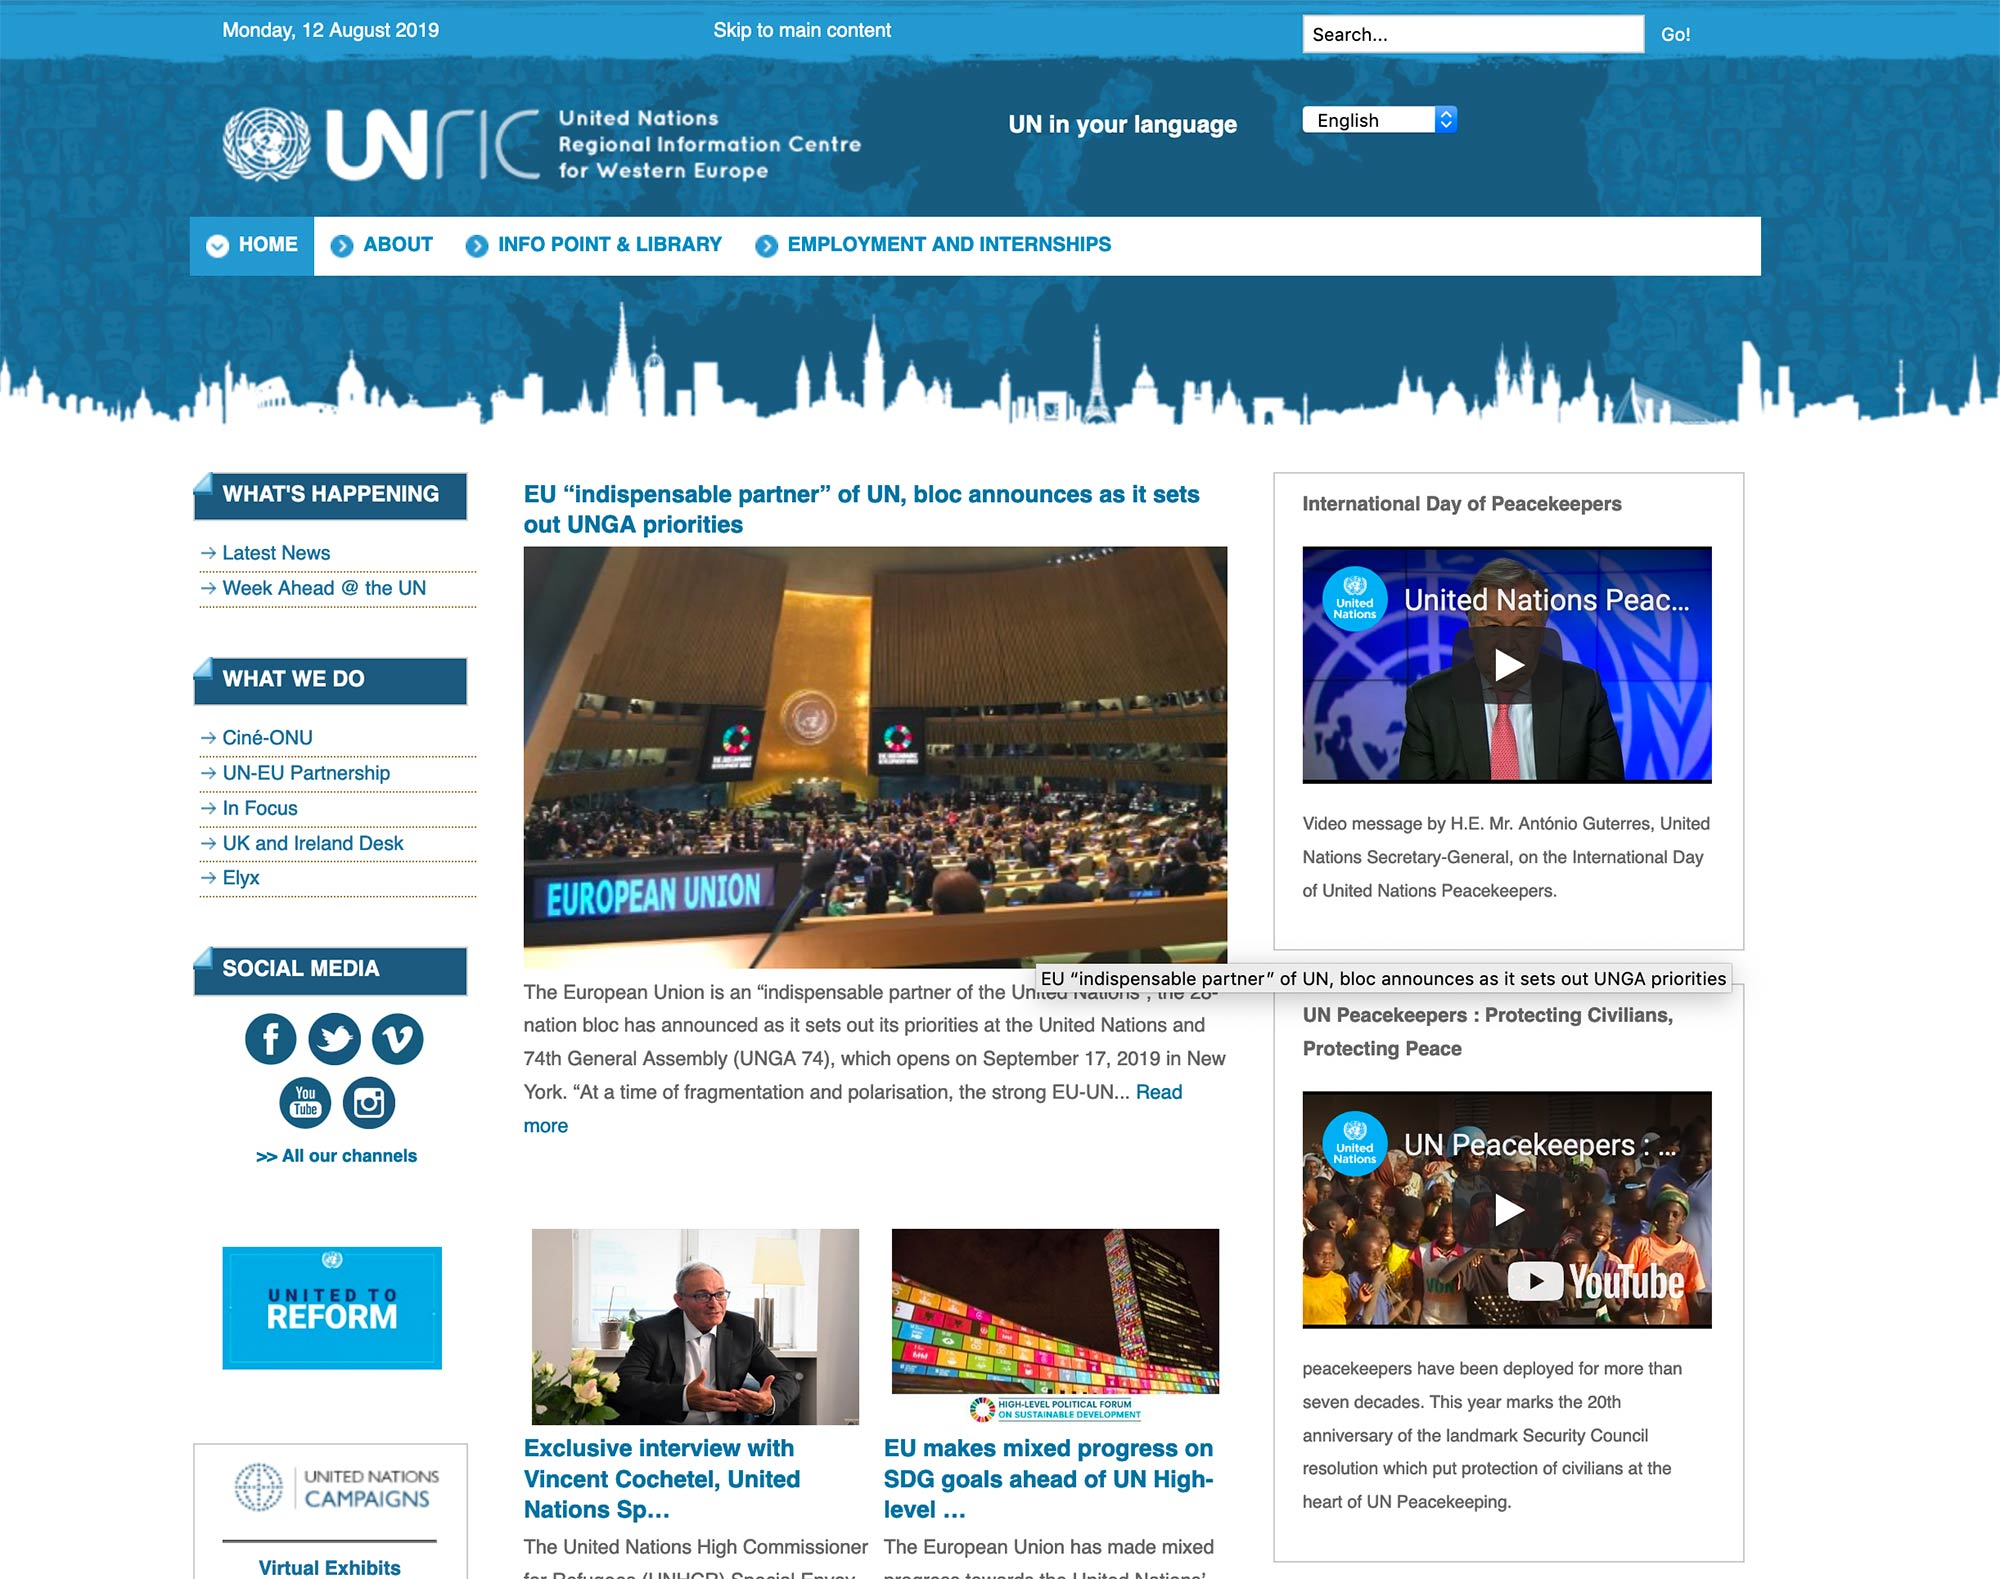 United Nations Regional Information Centre for Western Europe UNRIC